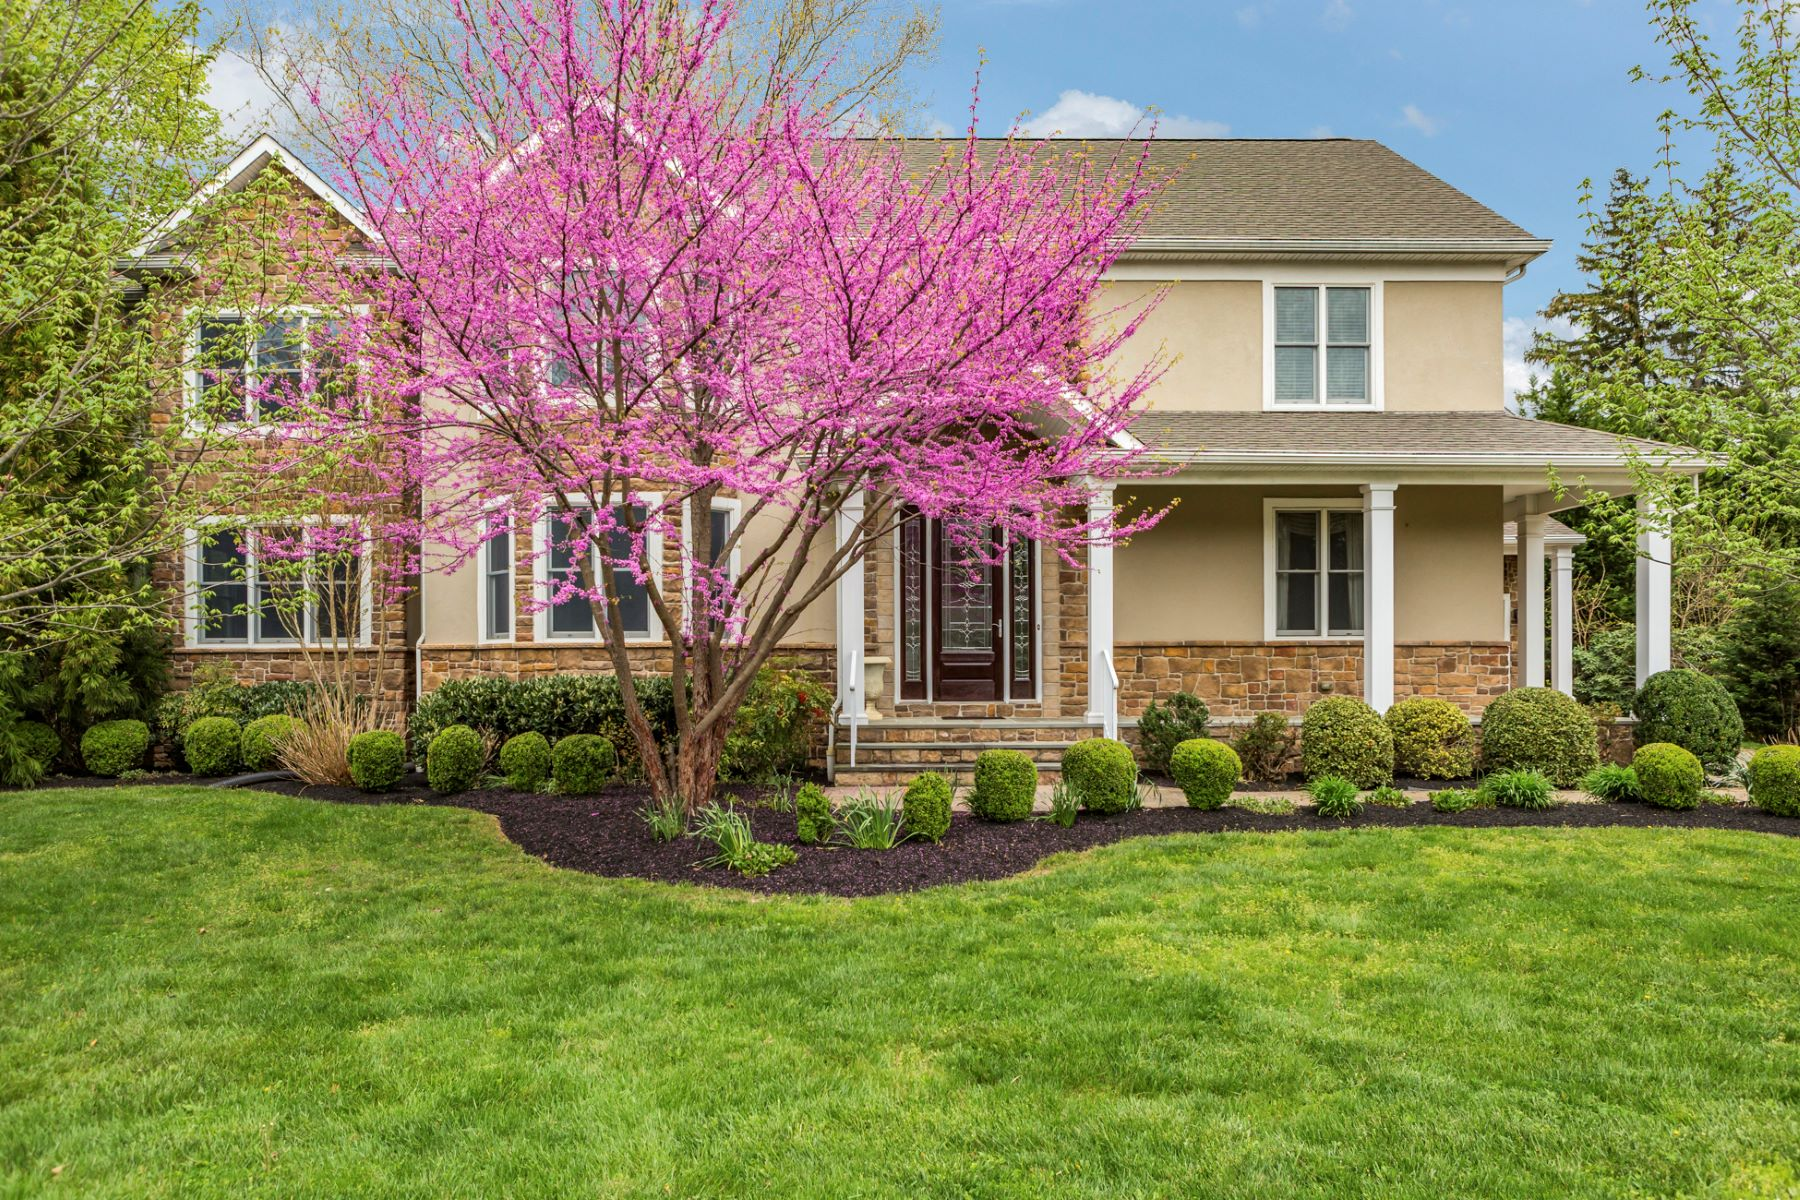 Single Family Home for Sale at Elegance and Comfort in Custom Lawrenceville Home - Lawrence Township 2 Shelmet Lane Lawrenceville, New Jersey 08648 United States